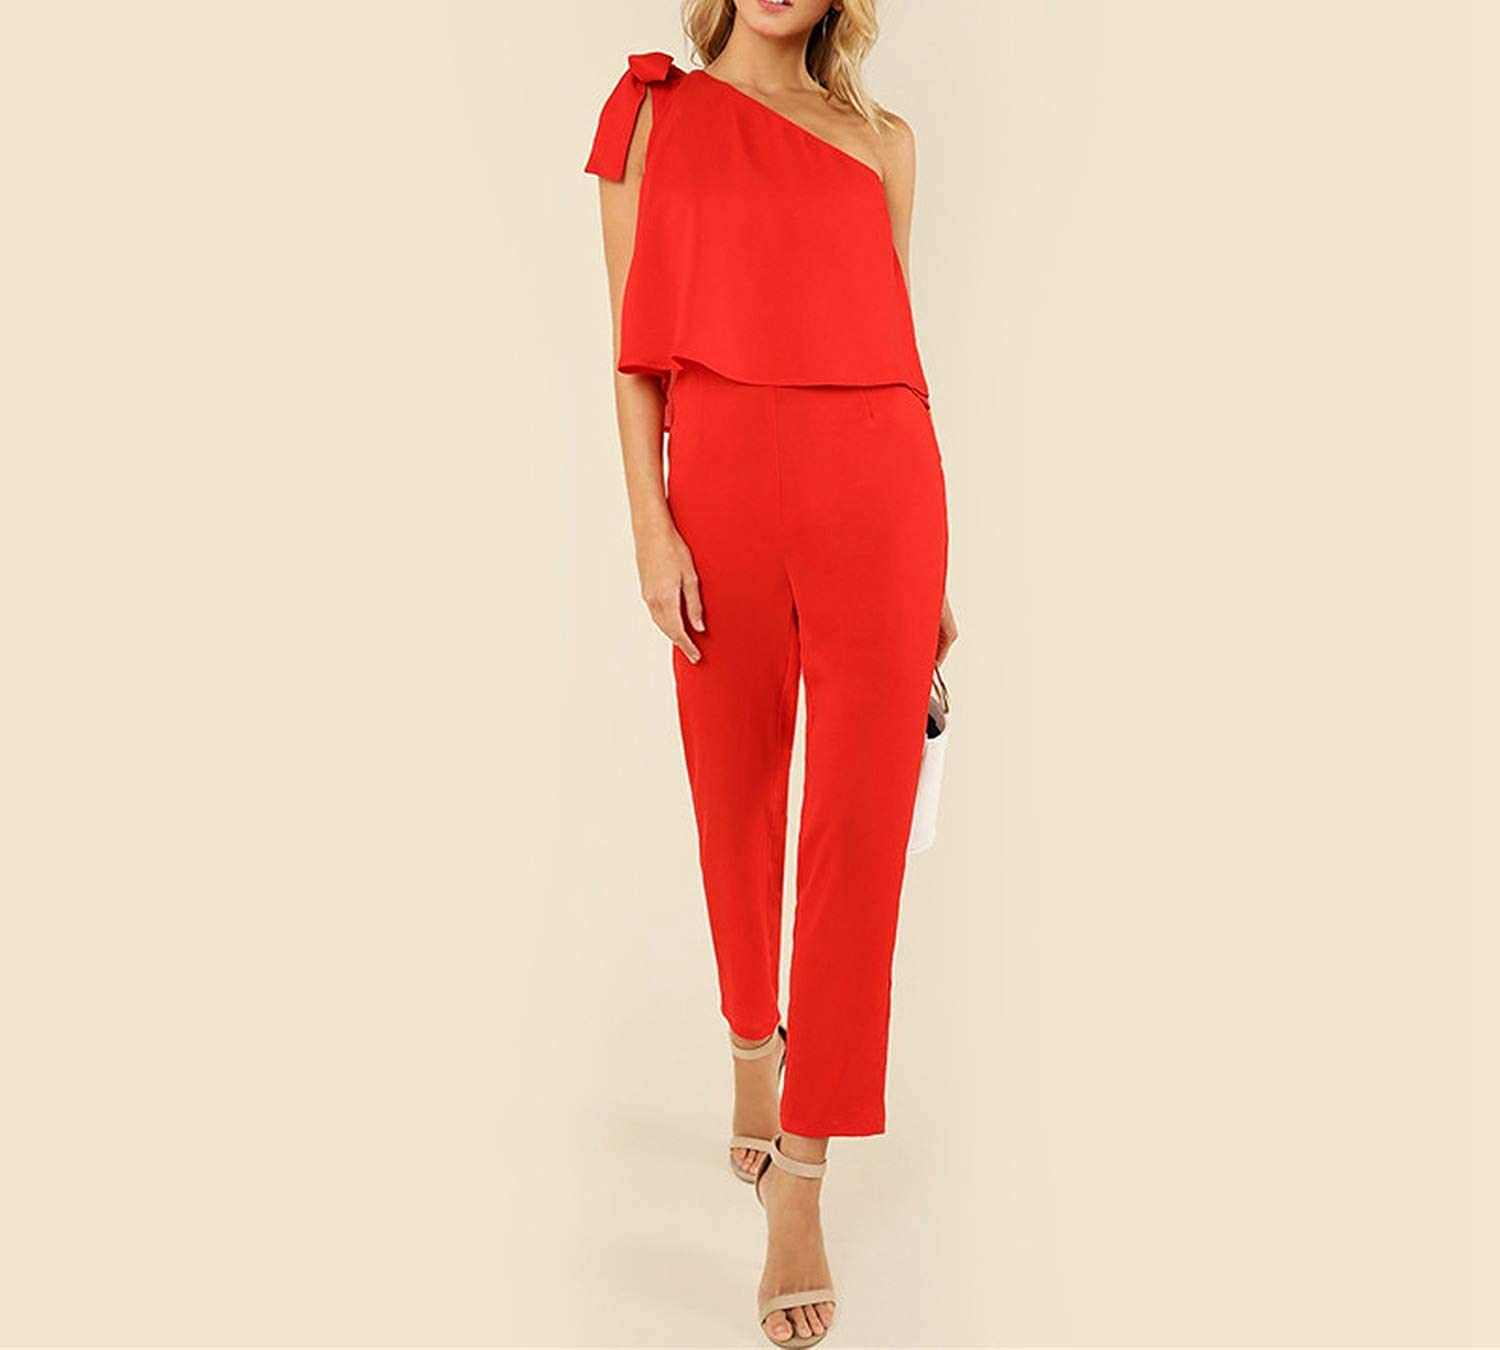 Red Tied One Shoulder Jumpsuit Ruffle Embellished Sleeveless Office Ladies Workwear Women Summer Elegant Jumpsuit